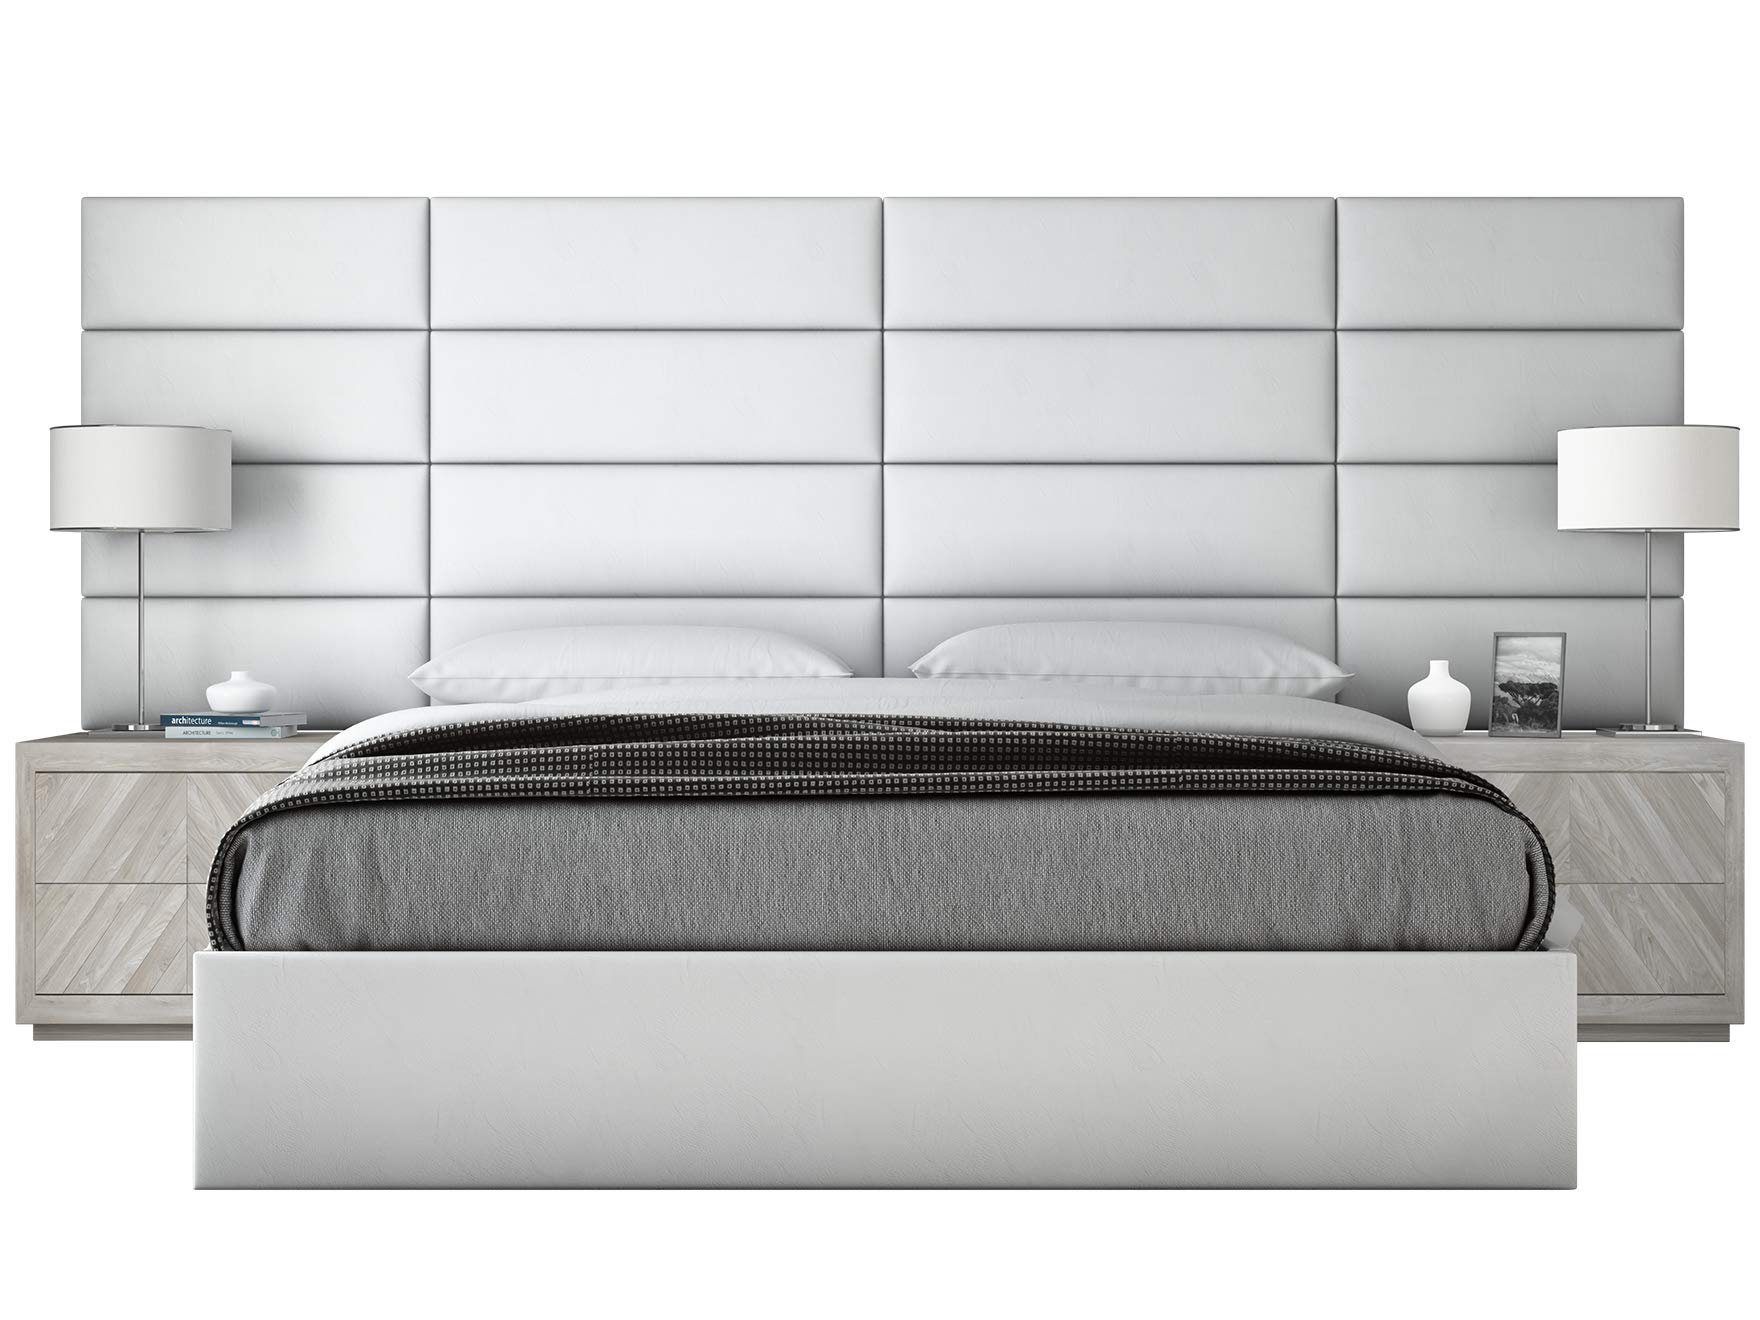 VANT Upholstered Headboards - Accent Wall Panels - Packs of 4 - Vitage Leather White Dove - 39'' Wide x 11.5'' Height - Easy to Install - Twin - King Size Headboard